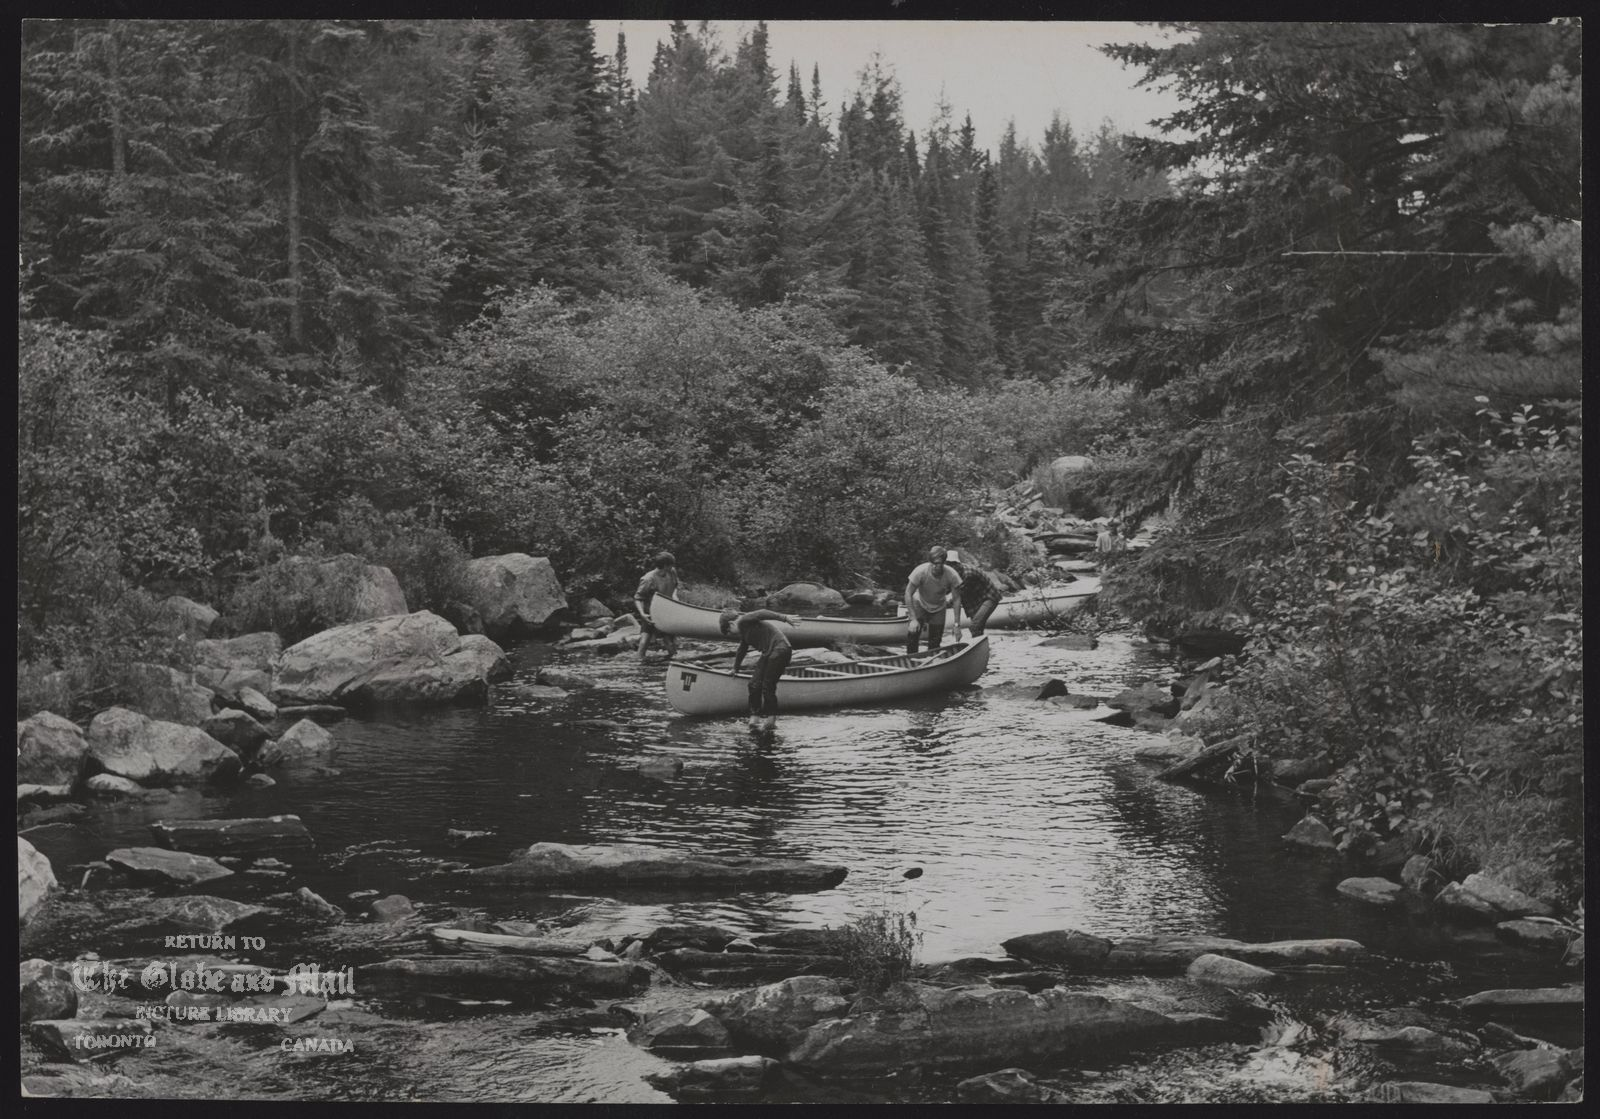 ALGONQUIN PARK Canoeists avoid portage by wading through creek's rocky section.